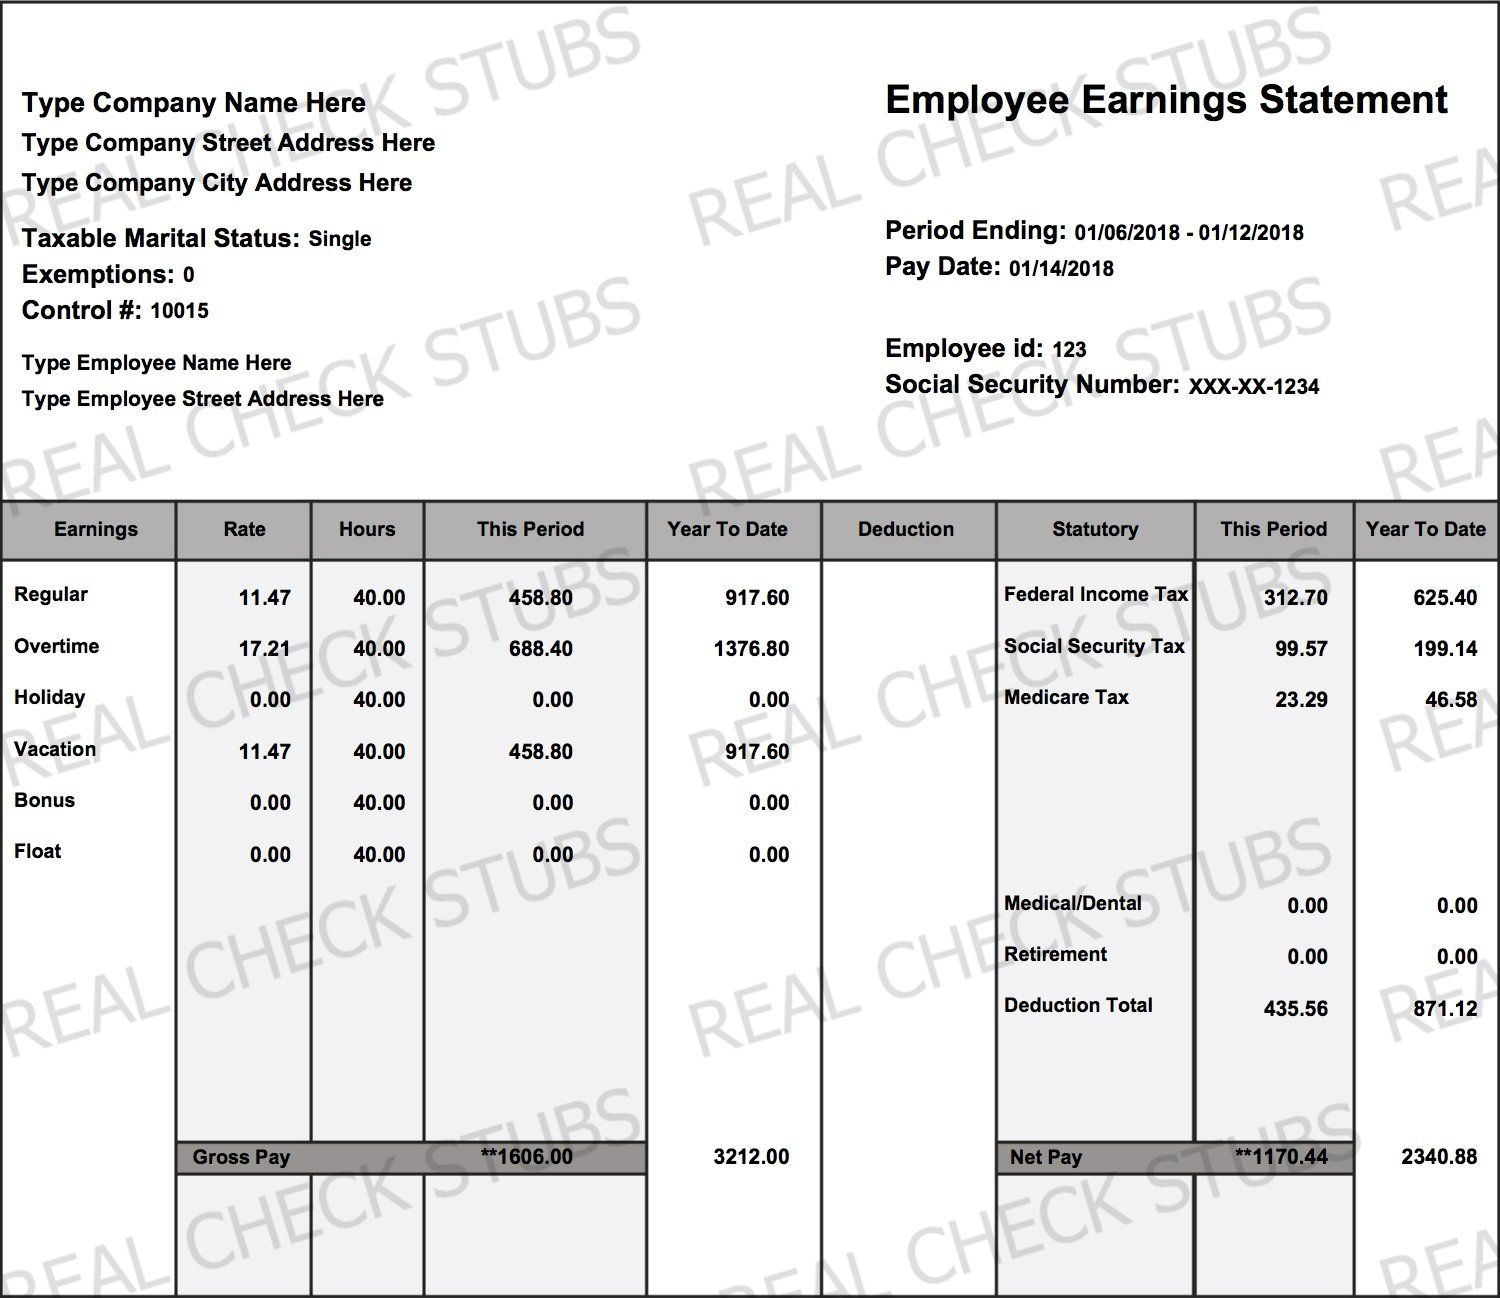 Real Paycheck Stubs Create Stubs Paycheck, Card